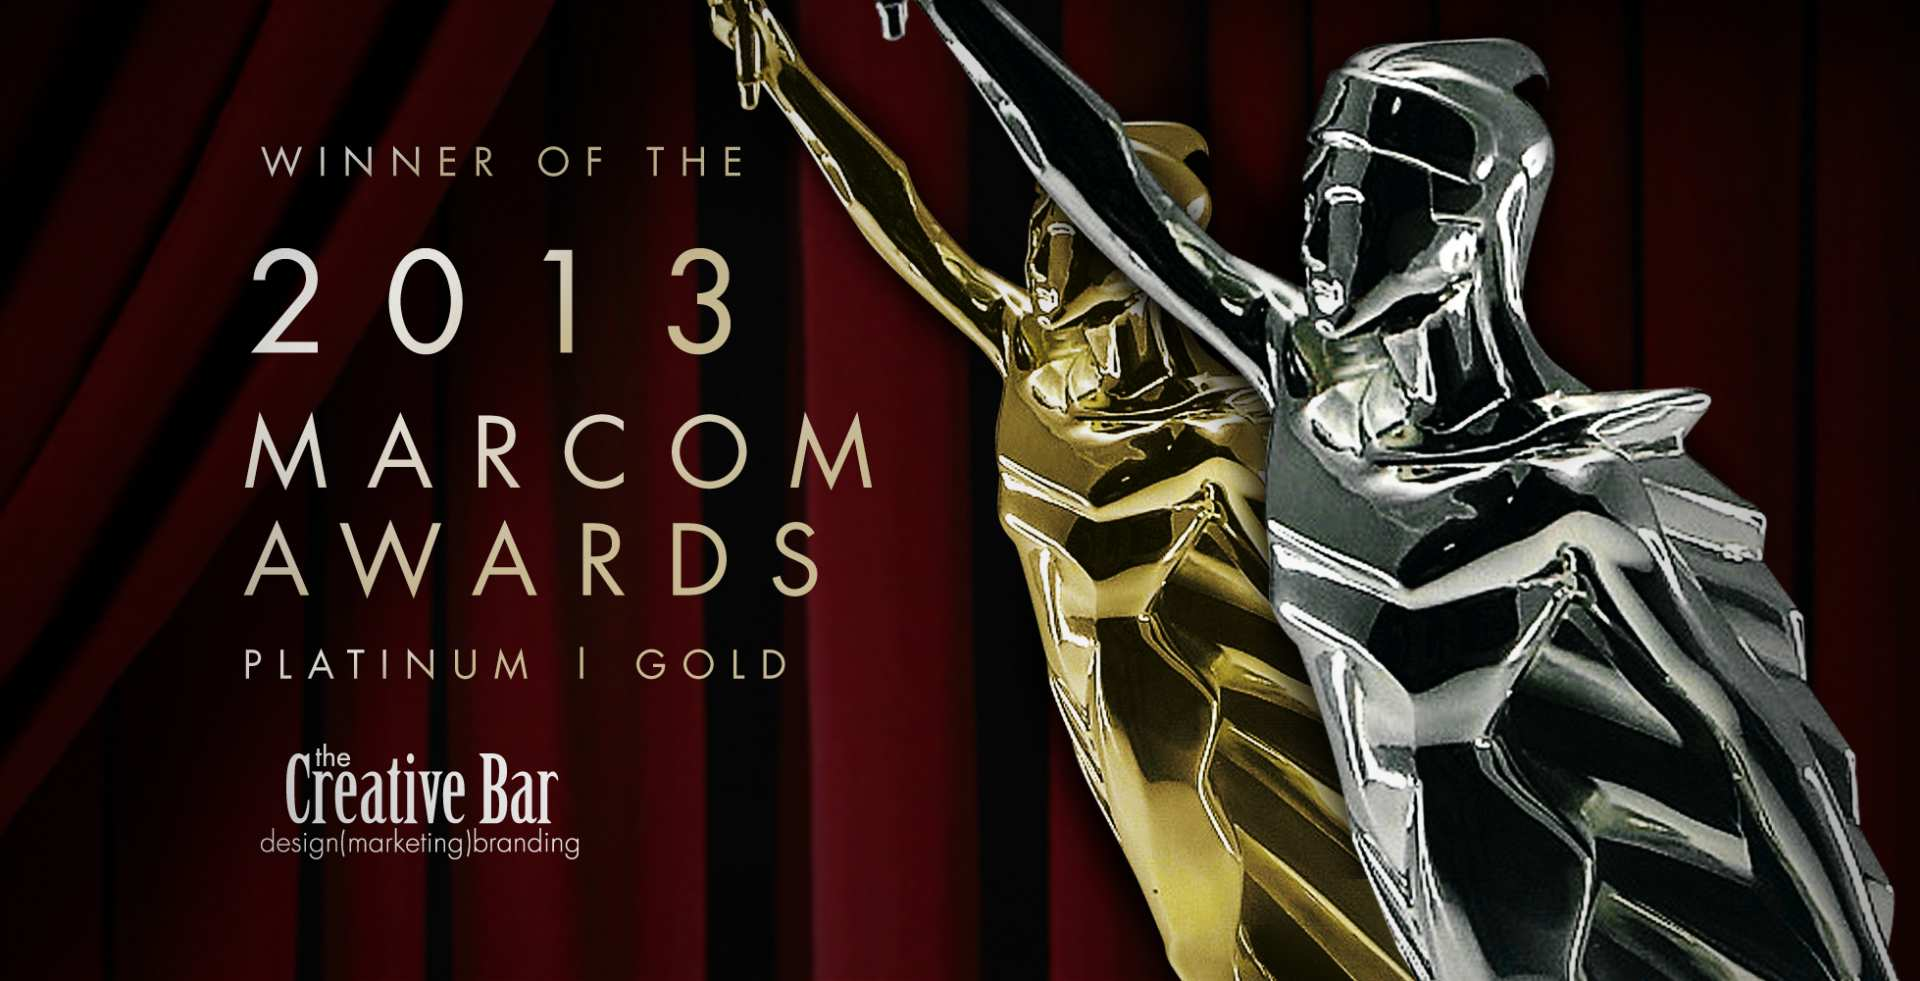 Winner of Marcom Awards - The Creative Bar